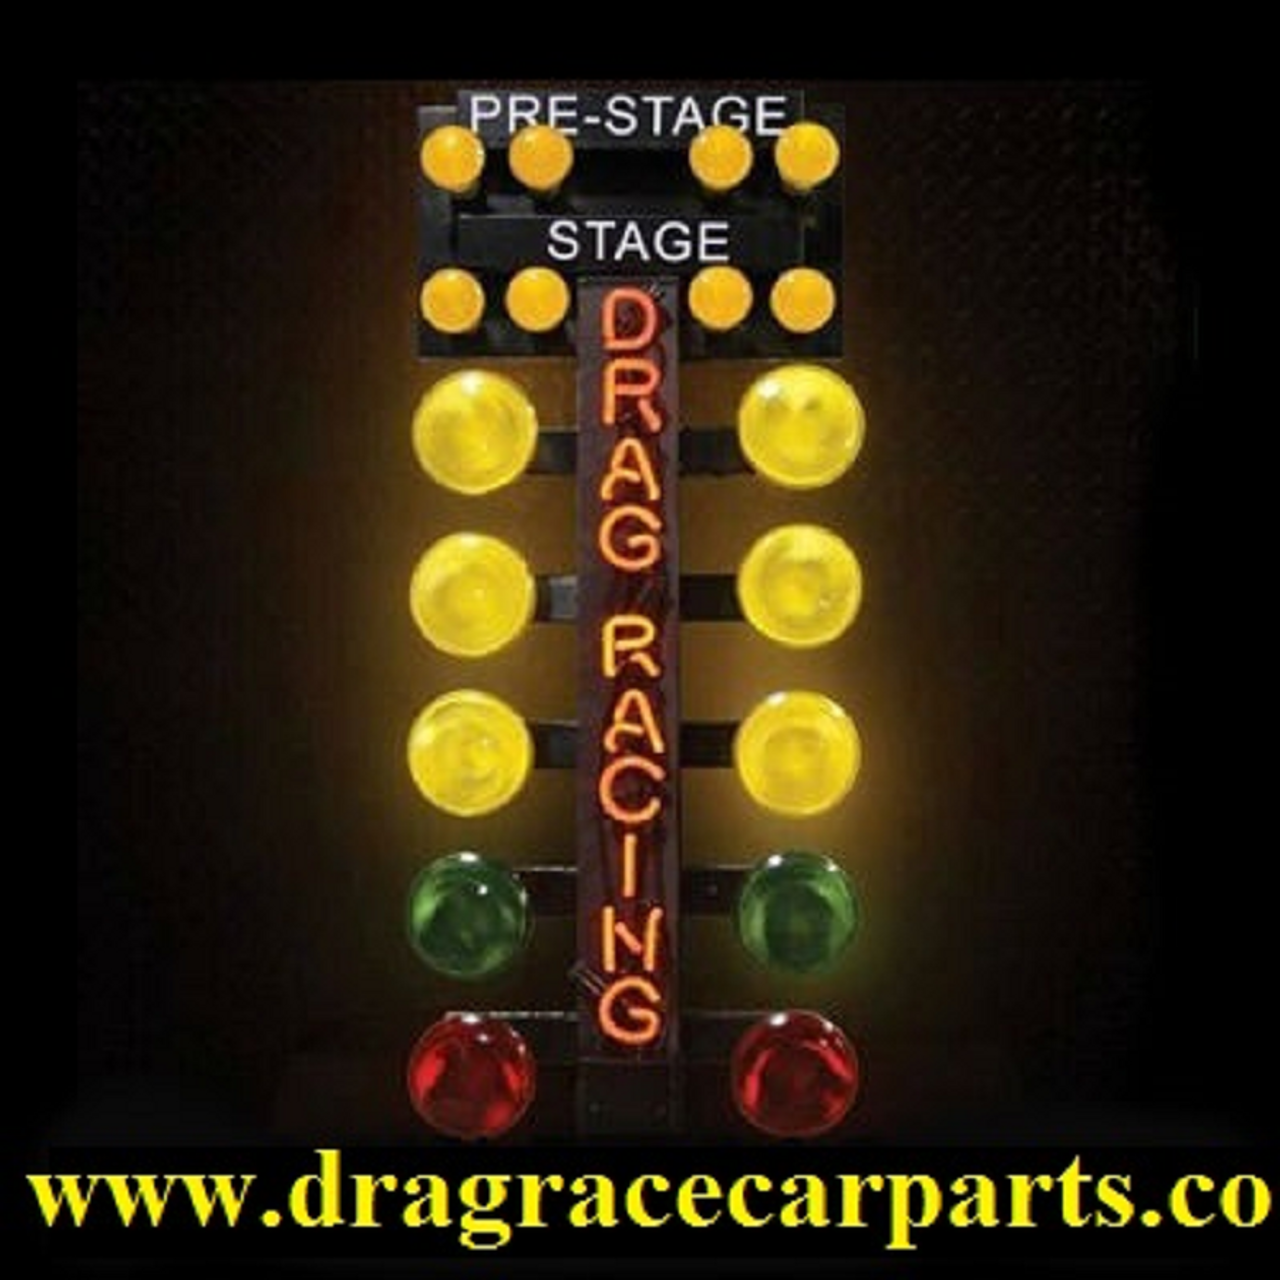 Drag Race Car Parts EGIFT CARDS at >>> https://squareup.com/gift/8S6DQ82MBXYKX/order